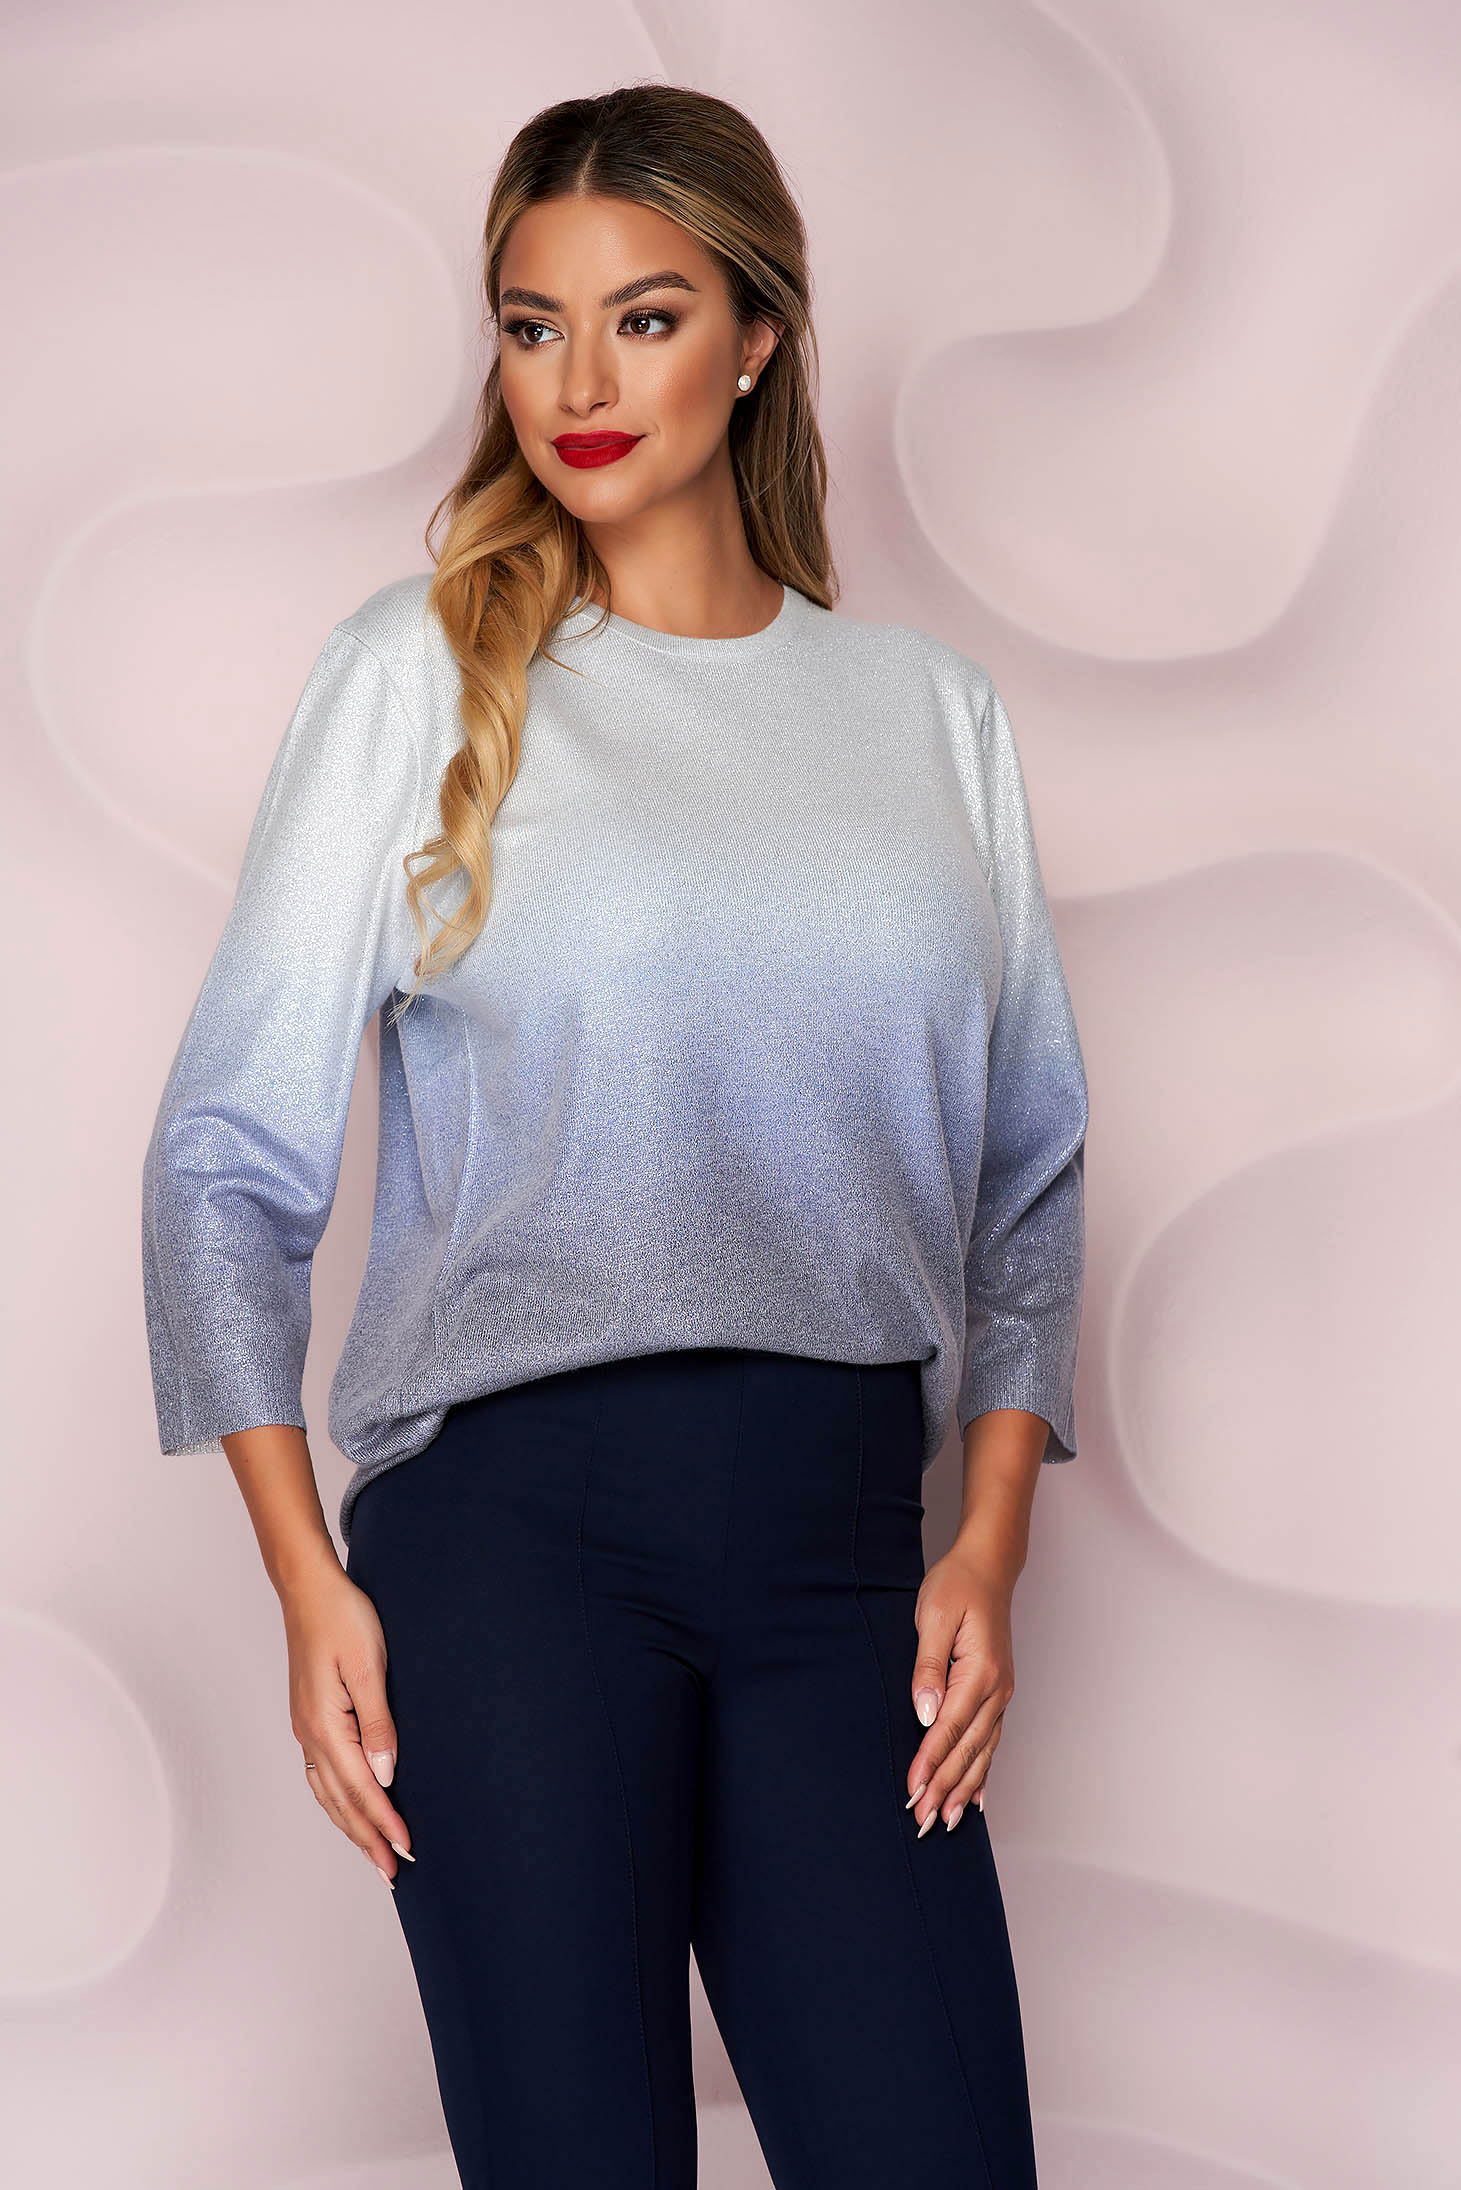 Silver sweater knitted loose fit casual with 3/4 sleeves from elastic fabric